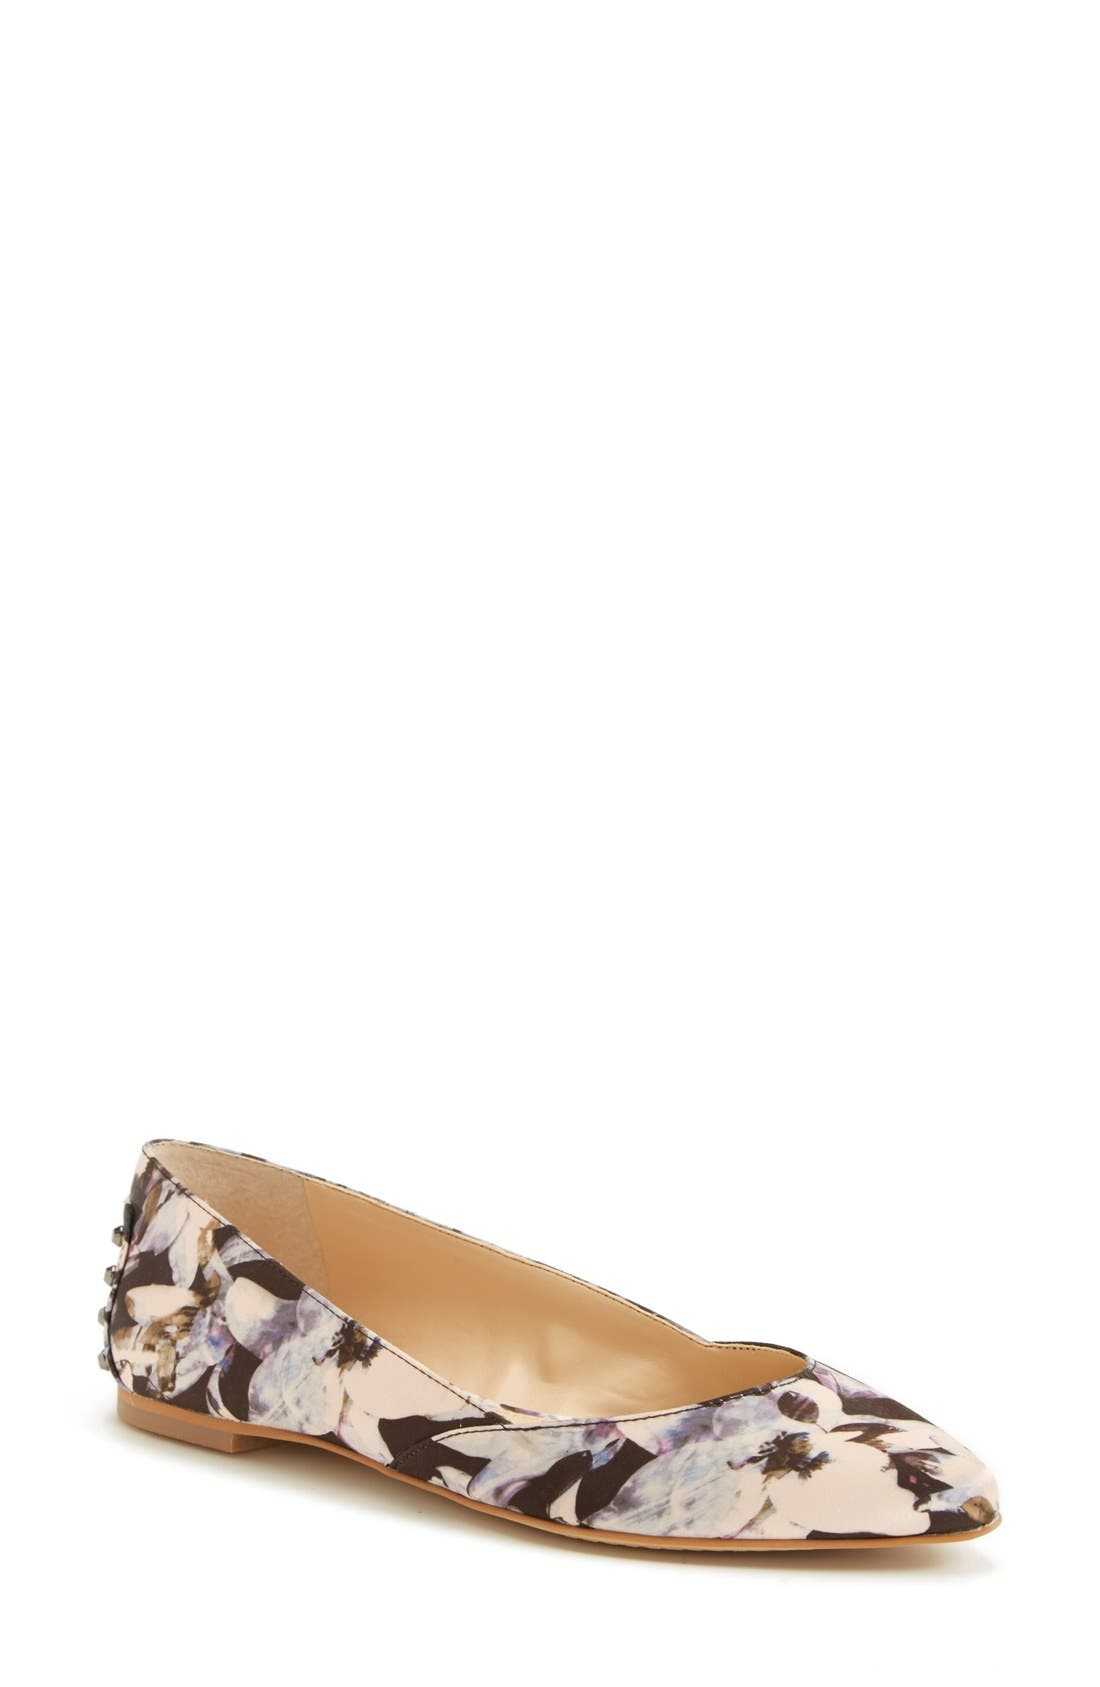 Alternate Image 1 Selected - Vince Camuto 'Alley' Studded Flat (Women)